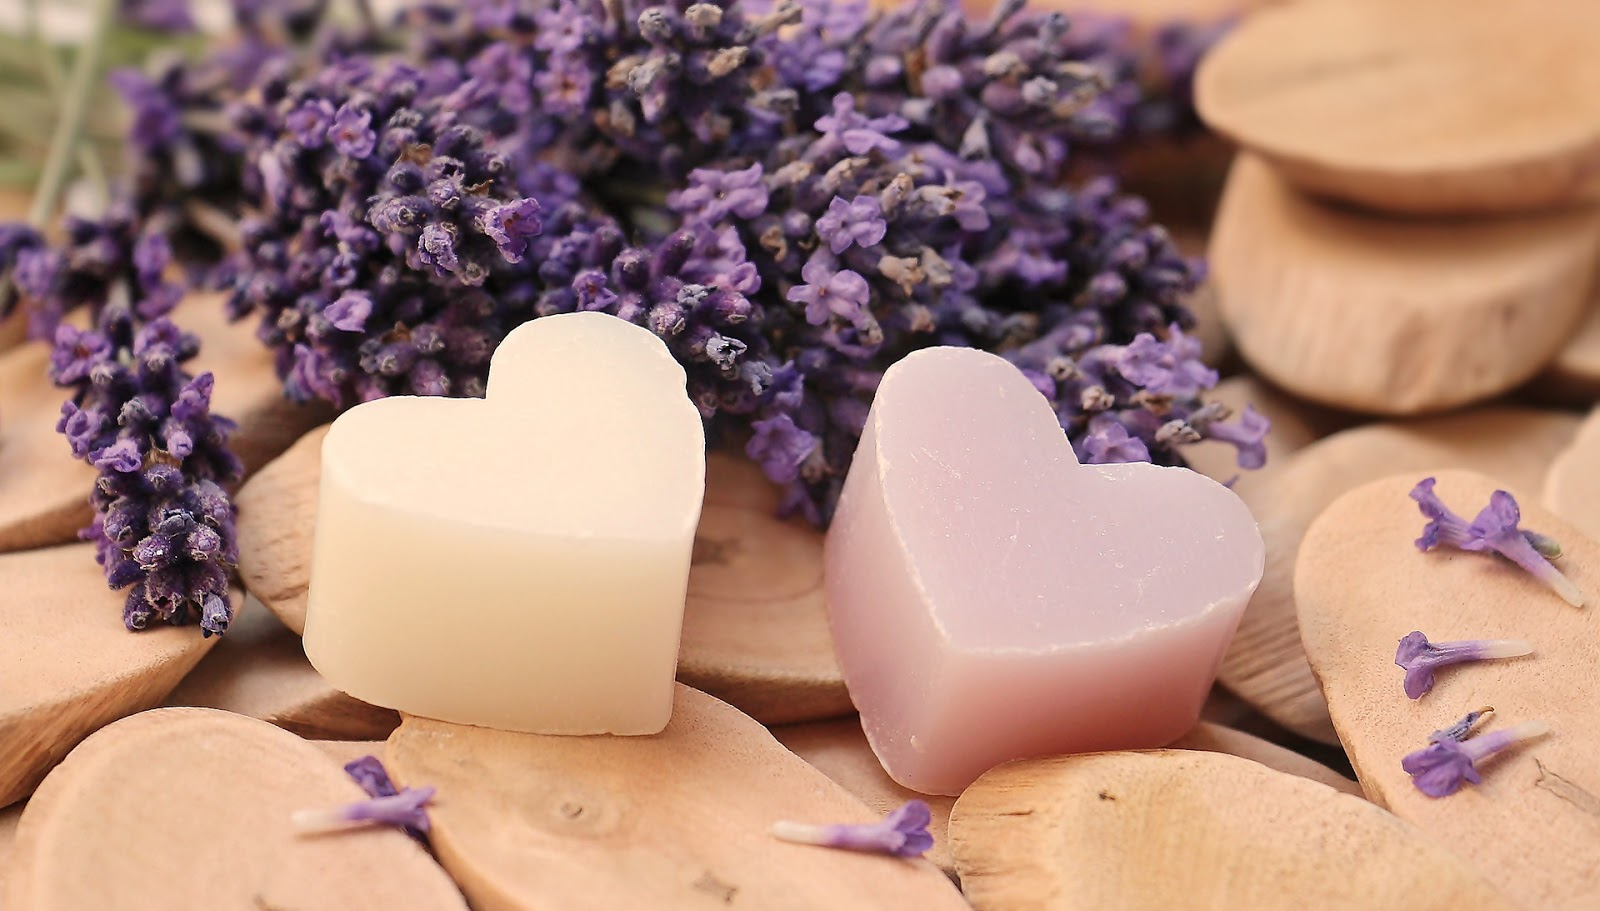 Lavender Heart Wood Soap Heart Love Romantic Images